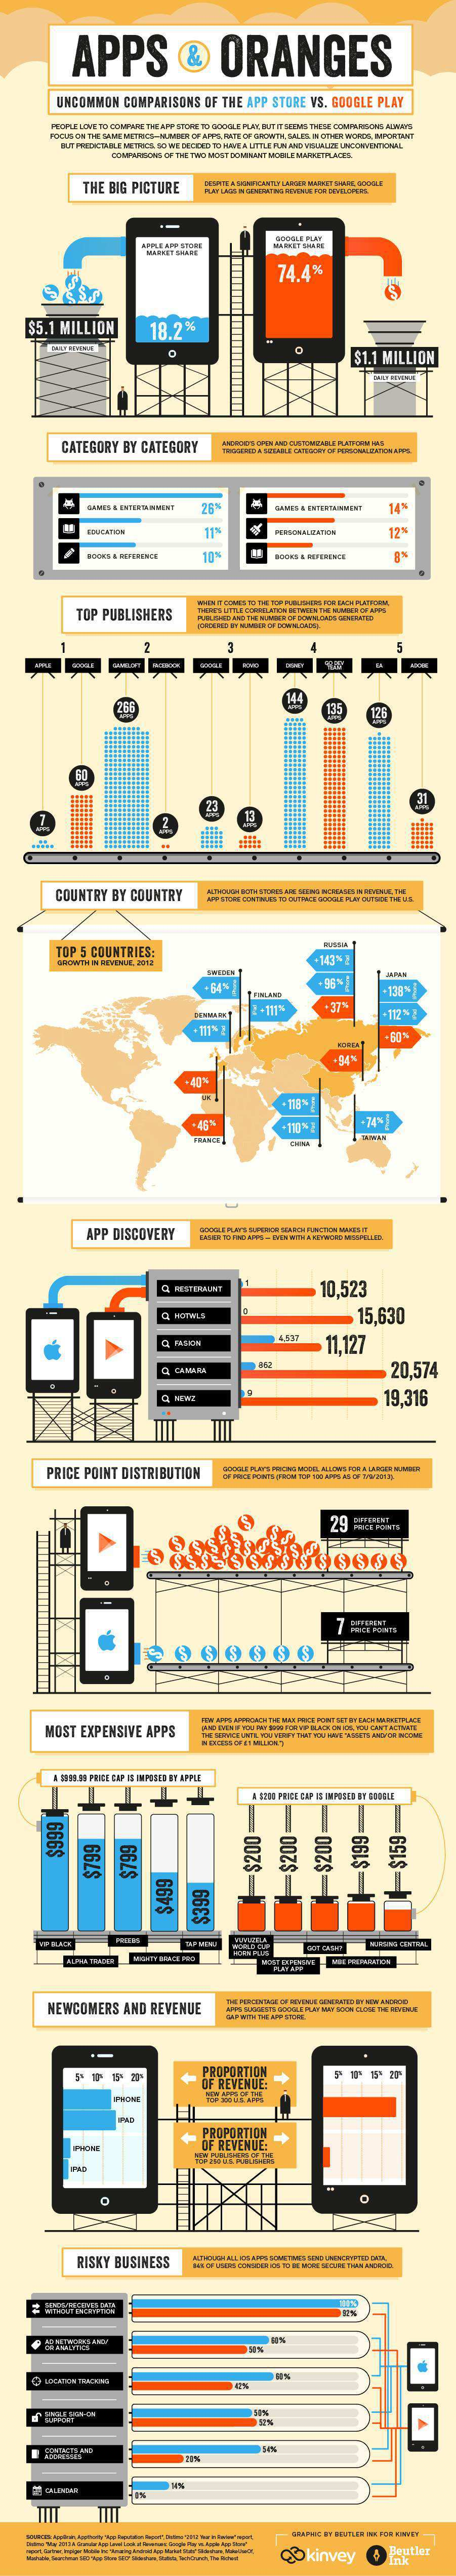 kinvey_apps_and_oranges_infographic